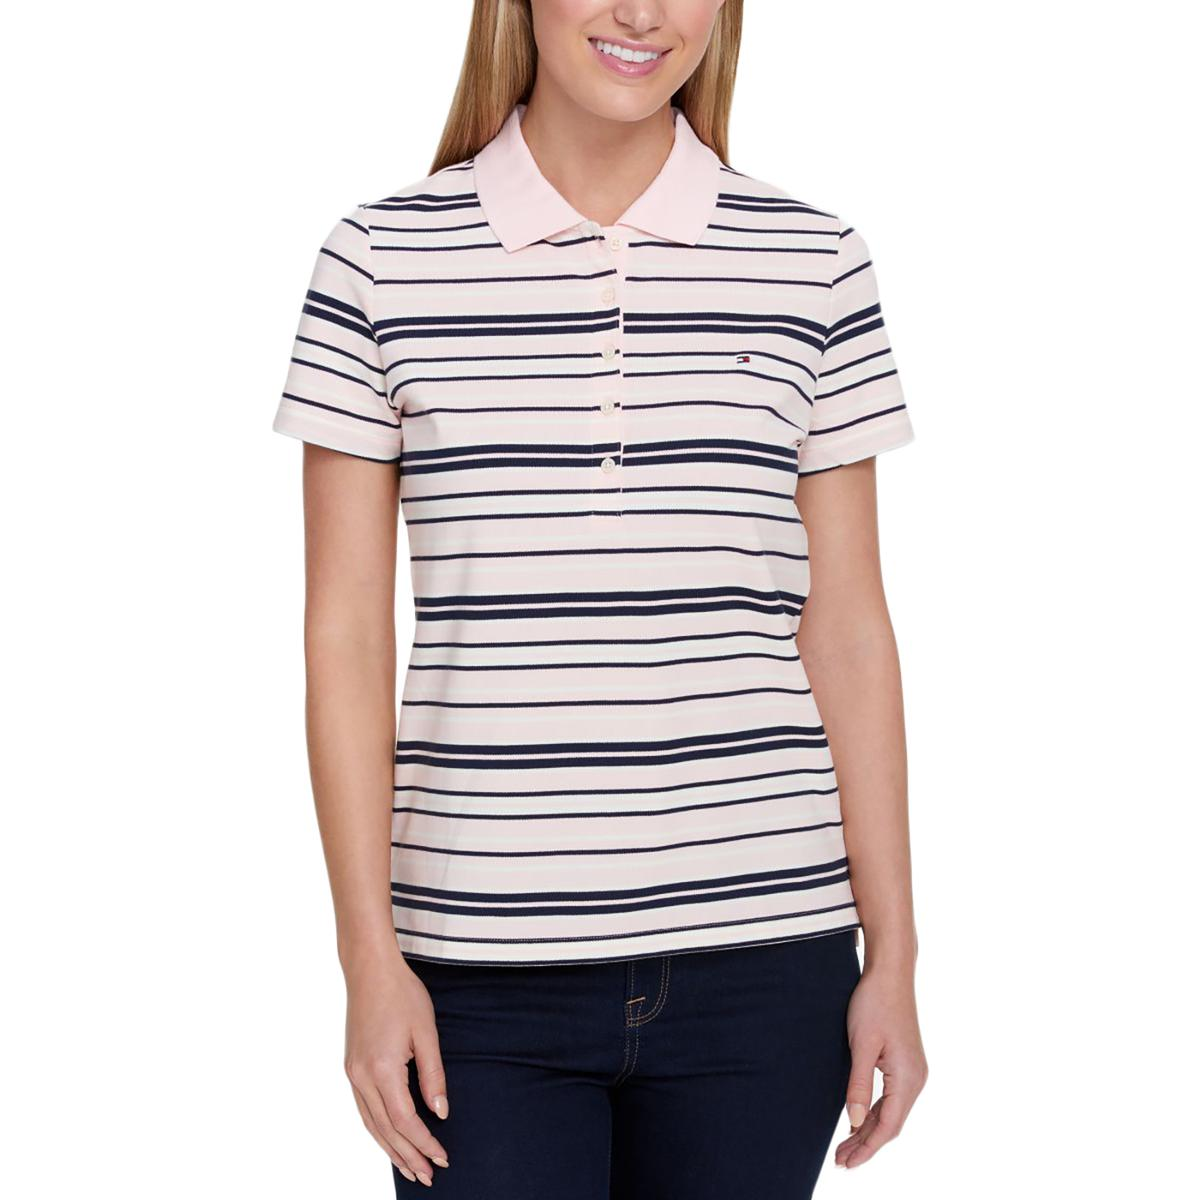 86bc8008 Image is loading Tommy-Hilfiger-Womens-Multi-Casual-Short-Sleeve-Striped-